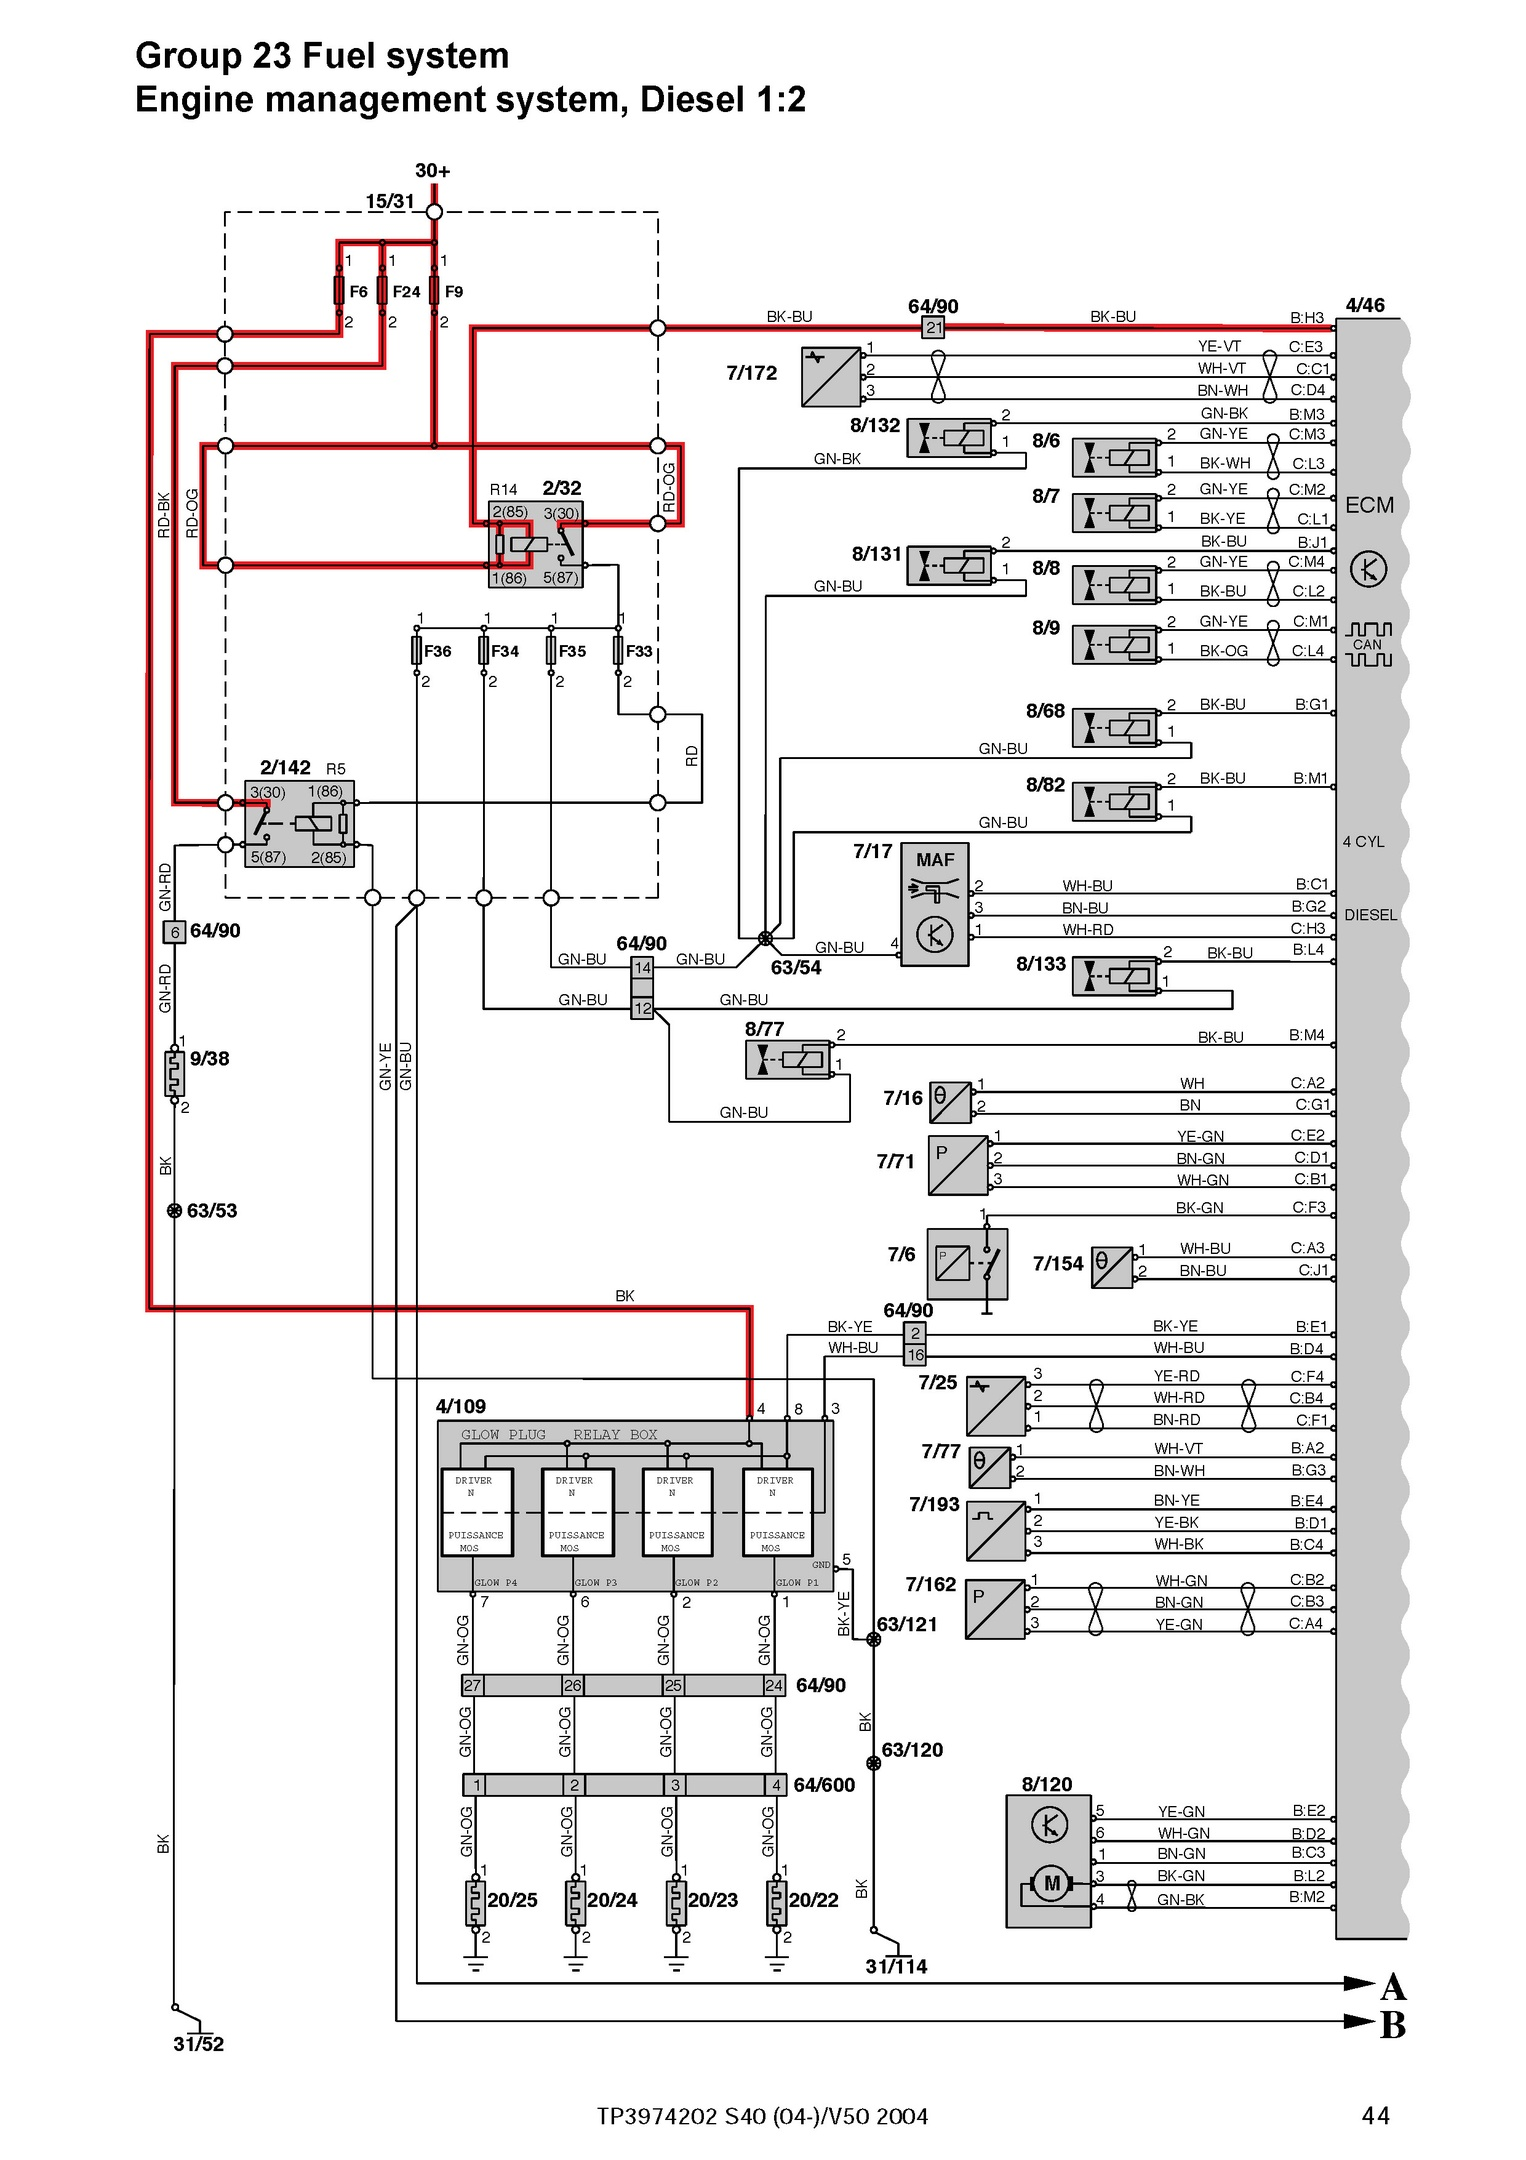 FREE 2004 Volvo S40, OEM Electrical Wiring Diagrams. - OEM ... Electrical Wiring Diagram Free on ac power plugs and sockets, distribution board, knob and tube wiring, three-phase electric power, circuit breaker, ring circuit, light switch, mains electricity by country, electrical system design, power cable, national electrical code, home wiring, circuit diagram, electrical conduit, earthing system, junction box, electrical wiring in north america, ground and neutral,